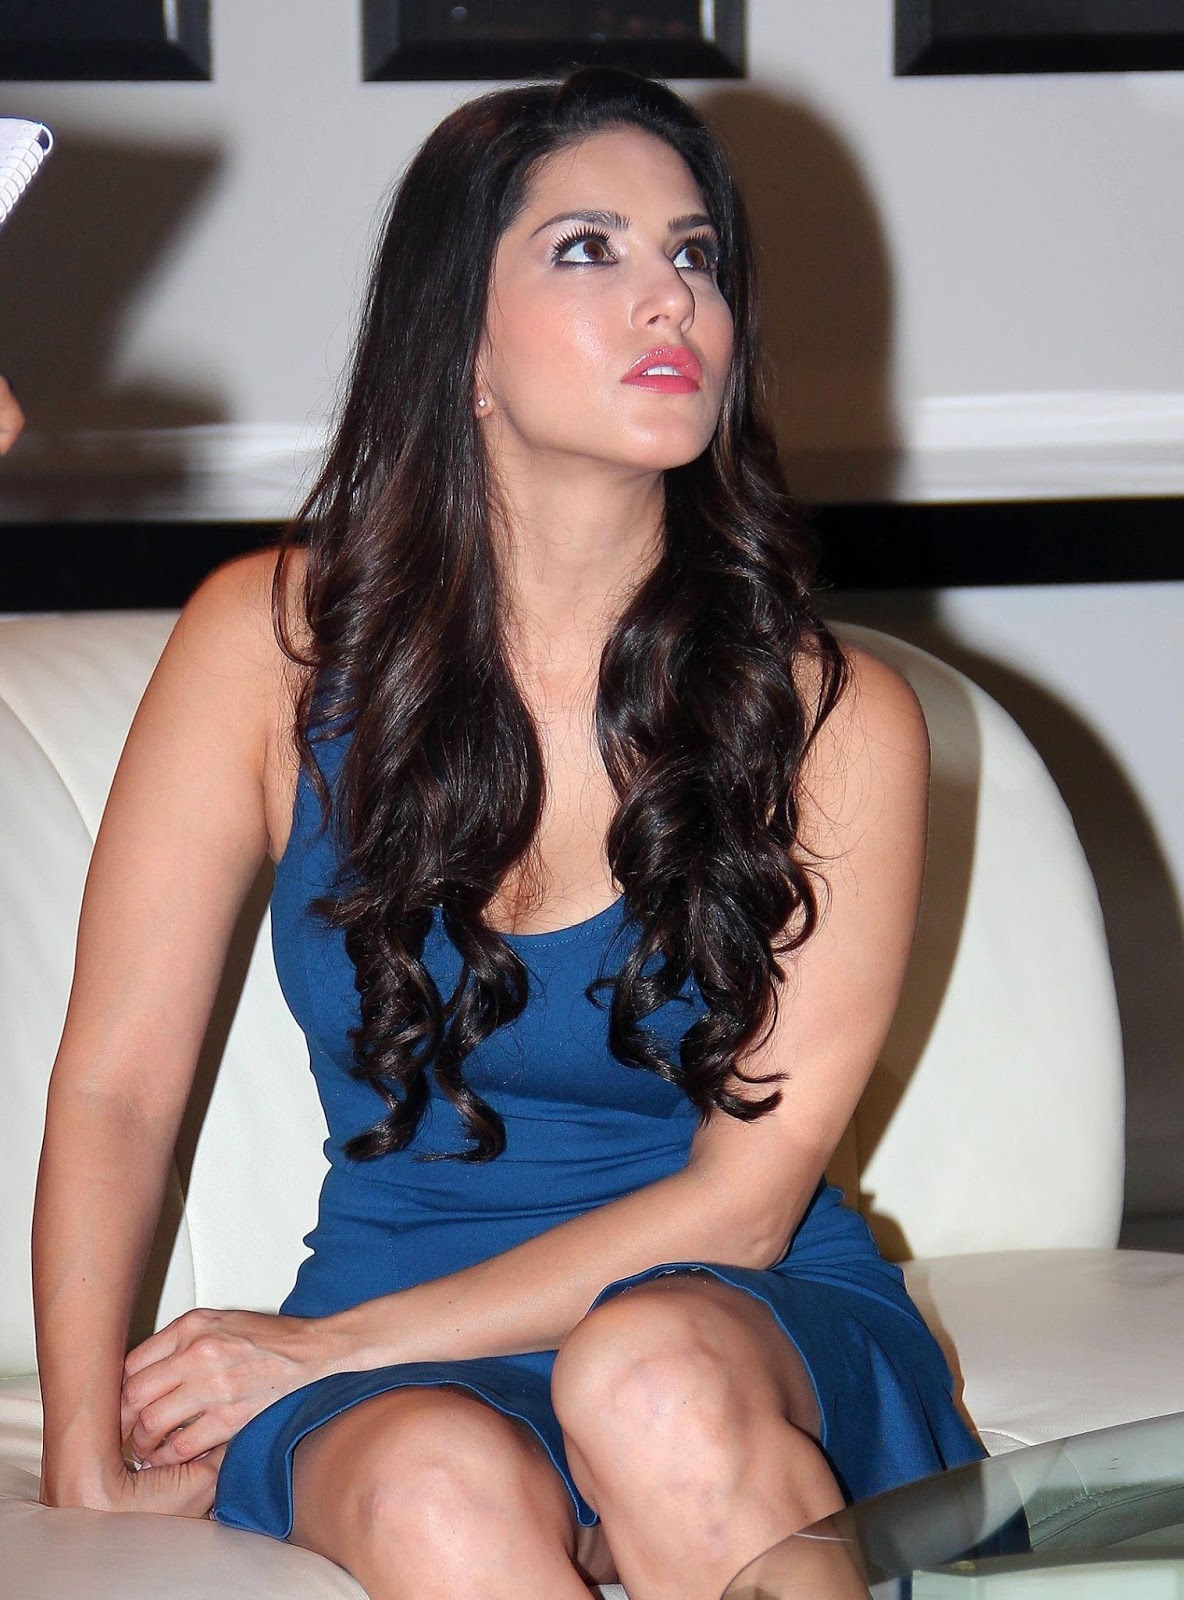 Bollywood Actress Sunny Leone Hot Legs Thigh Images In Blue Mini Skirt